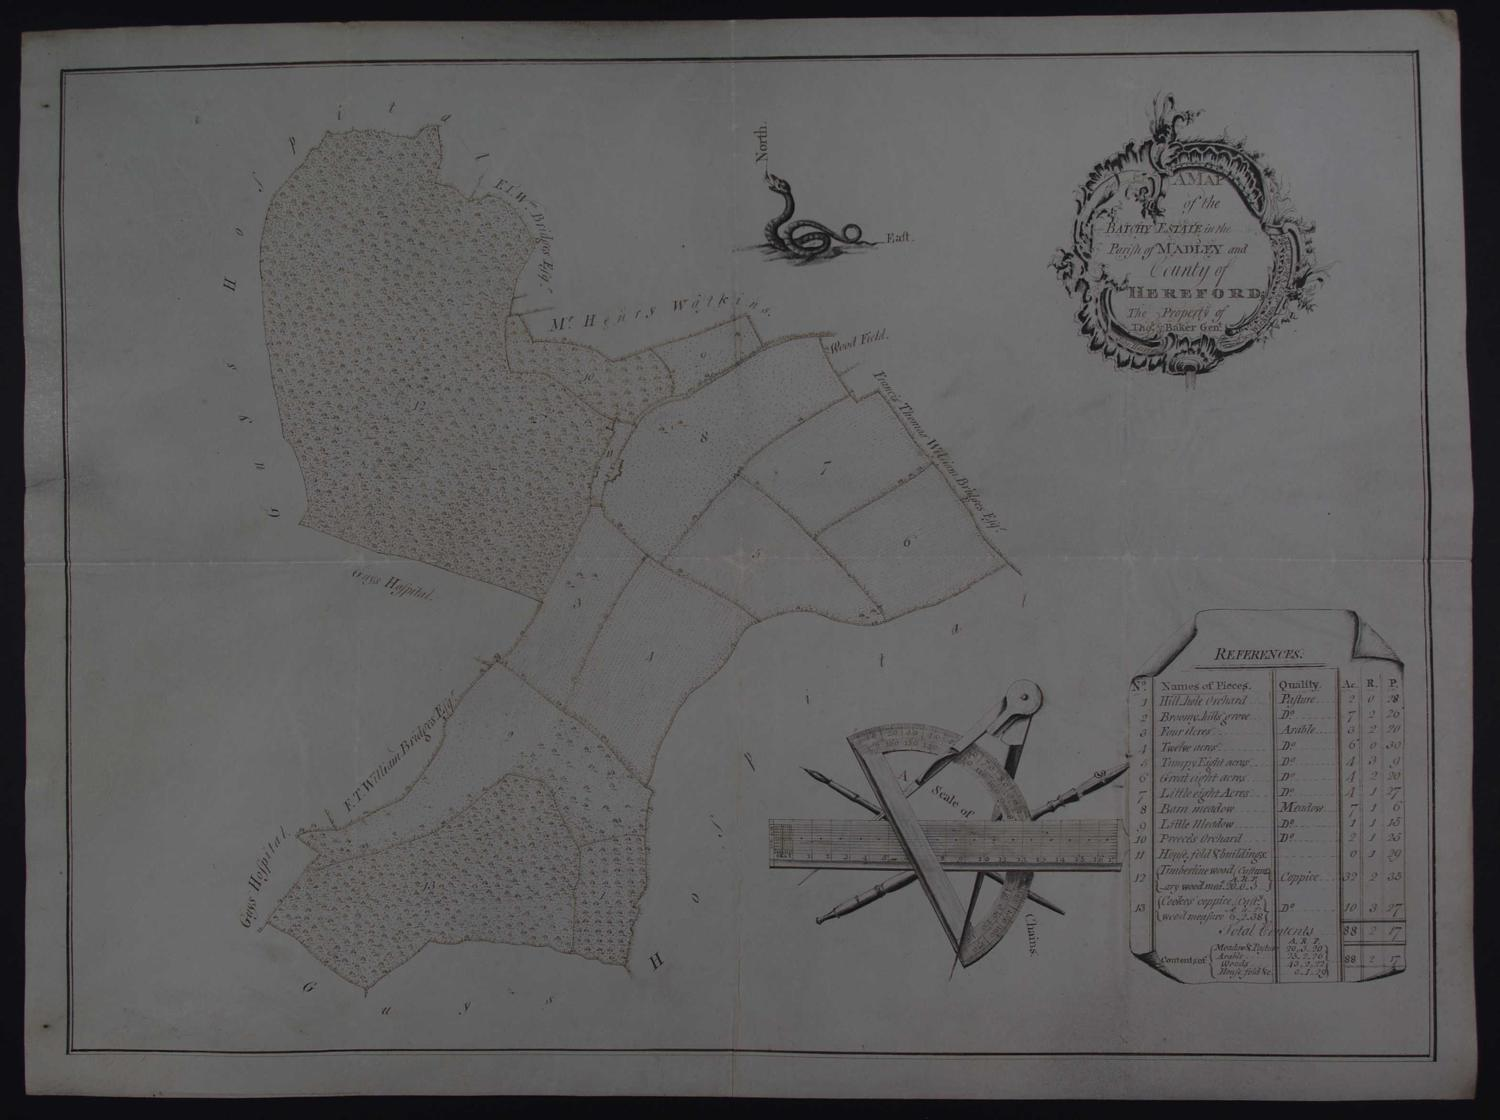 A Map of the Batchy Estate in the Parish of Madley and County of Heref by John Harris